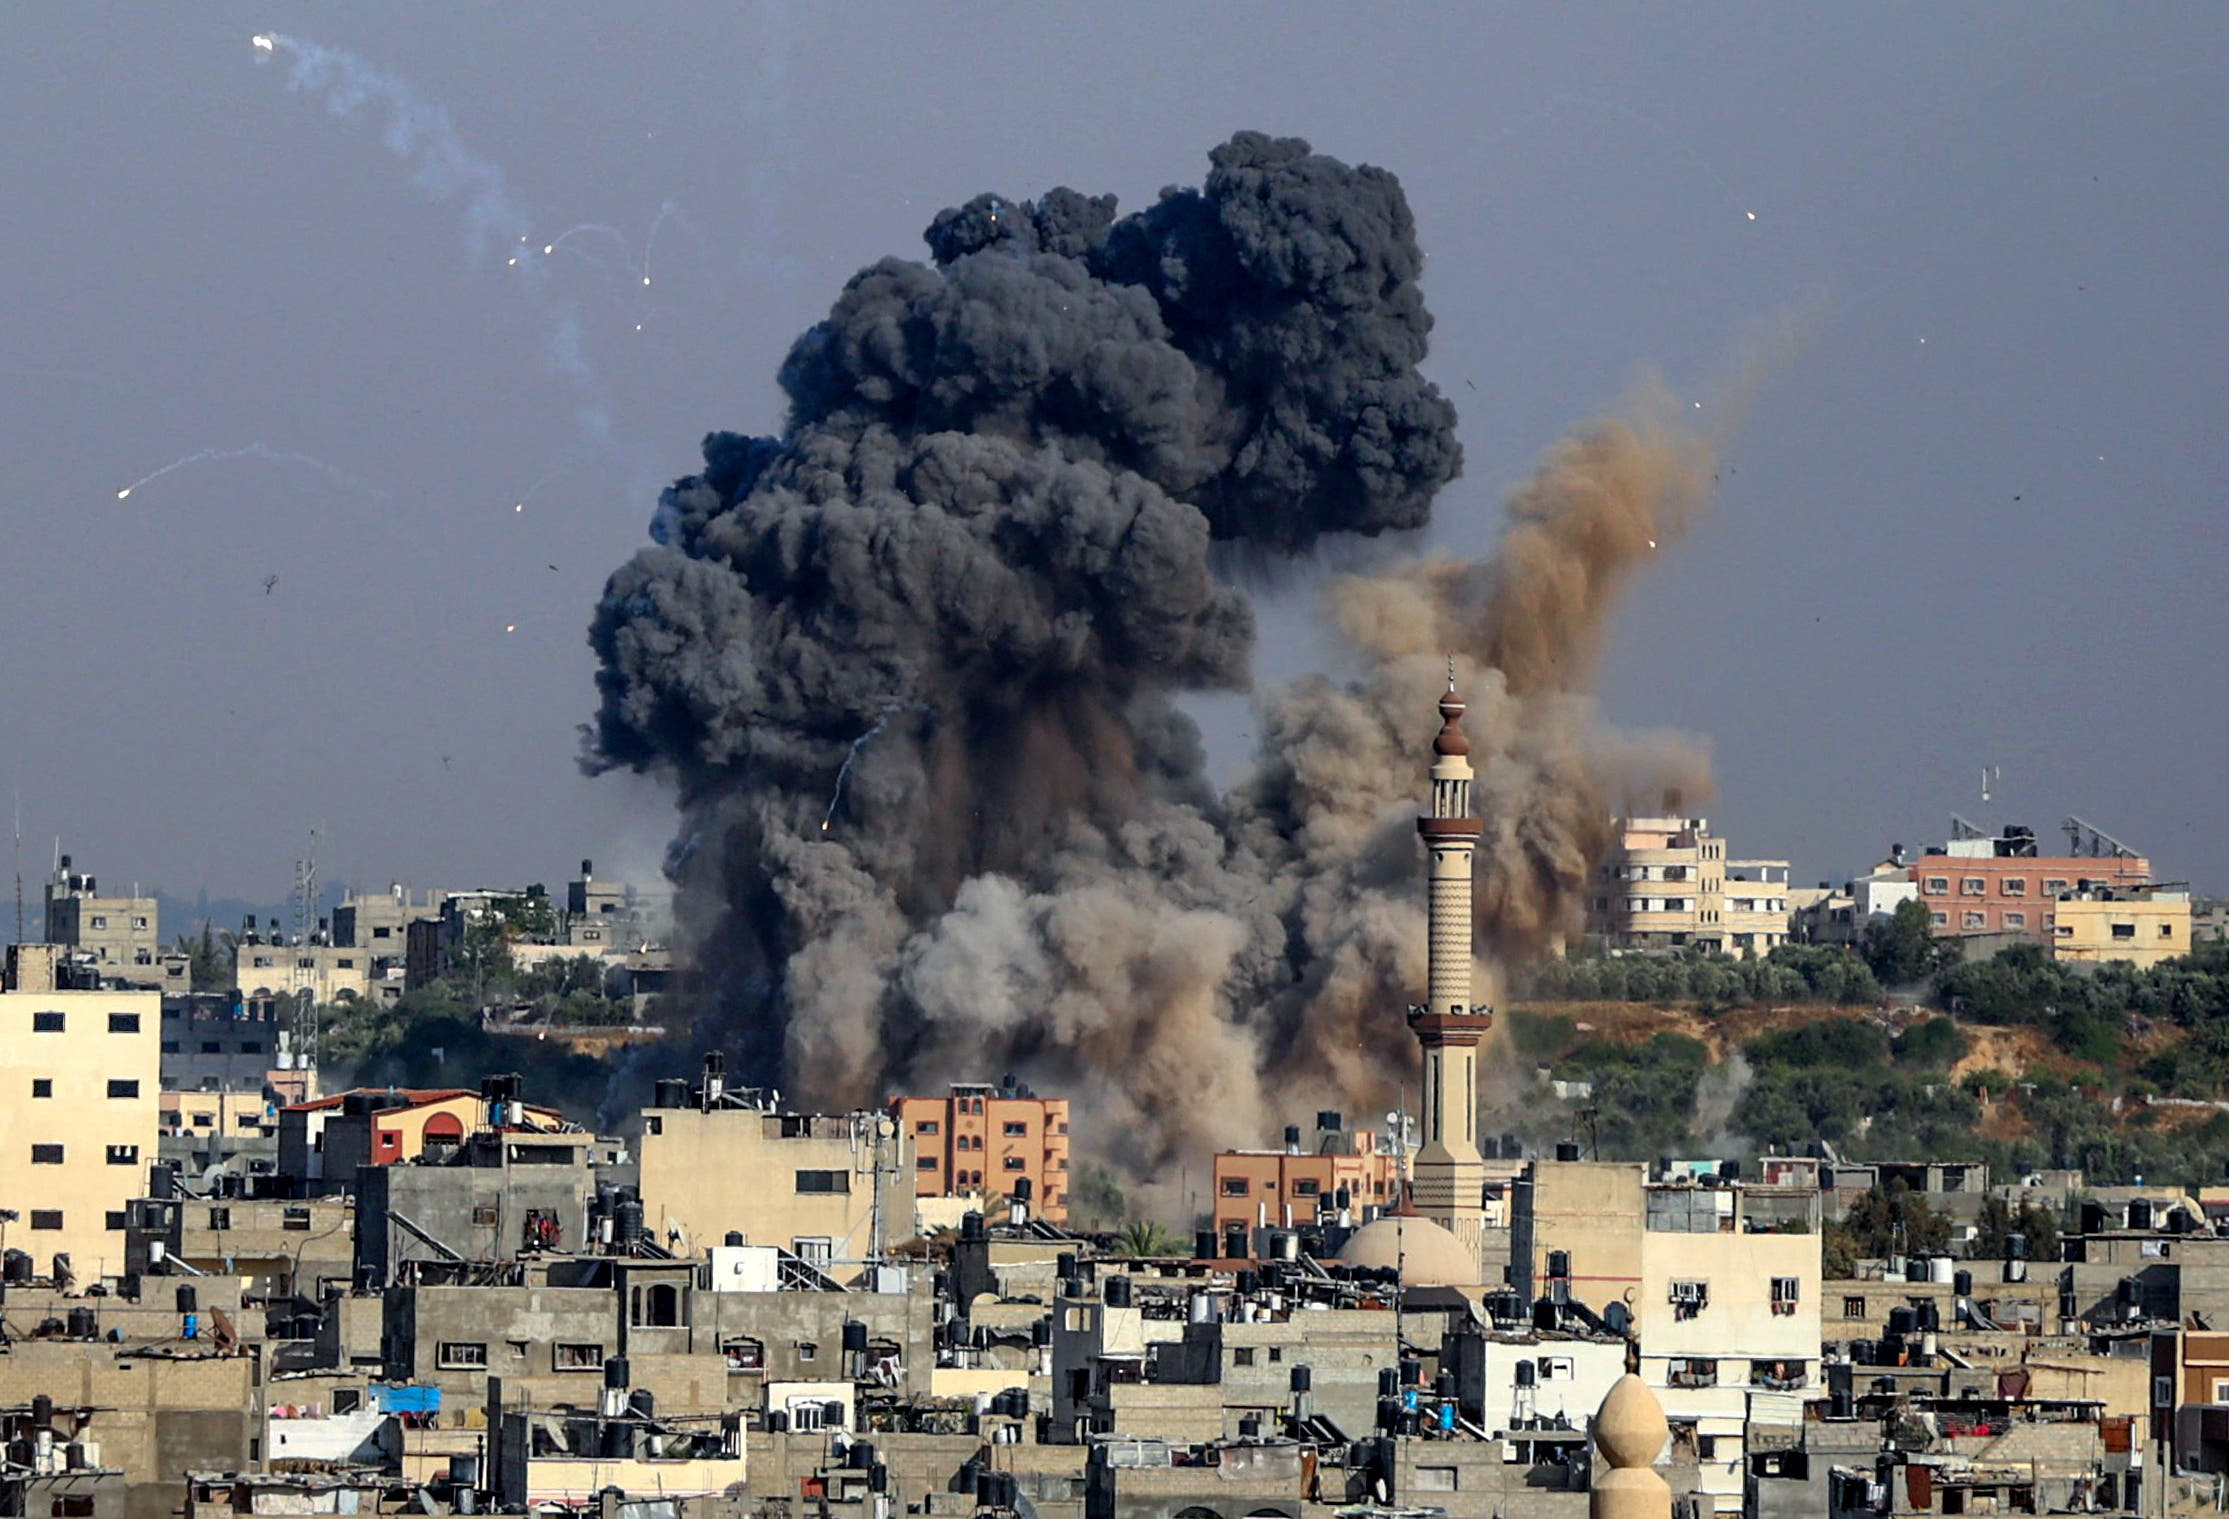 Smoke billows from Israeli air strikes in Gaza City, controlled by the Palestinian Hamas movement, on May 11, 2021.